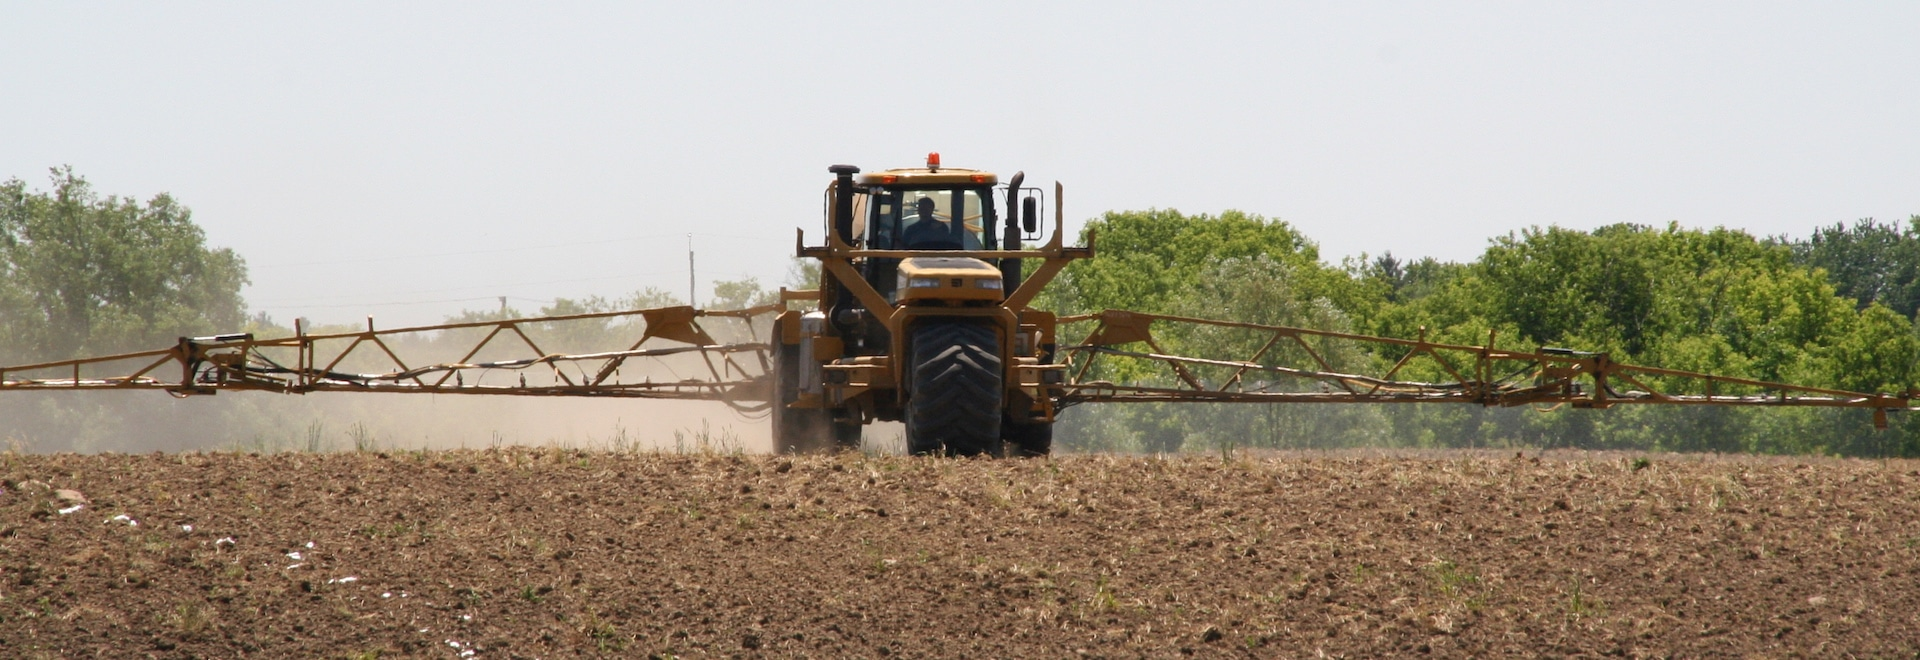 Although there is no difference in the total amount of nutrients supplied by either granular or liquid fertilizer for a specified plant nutrient application, there are differences